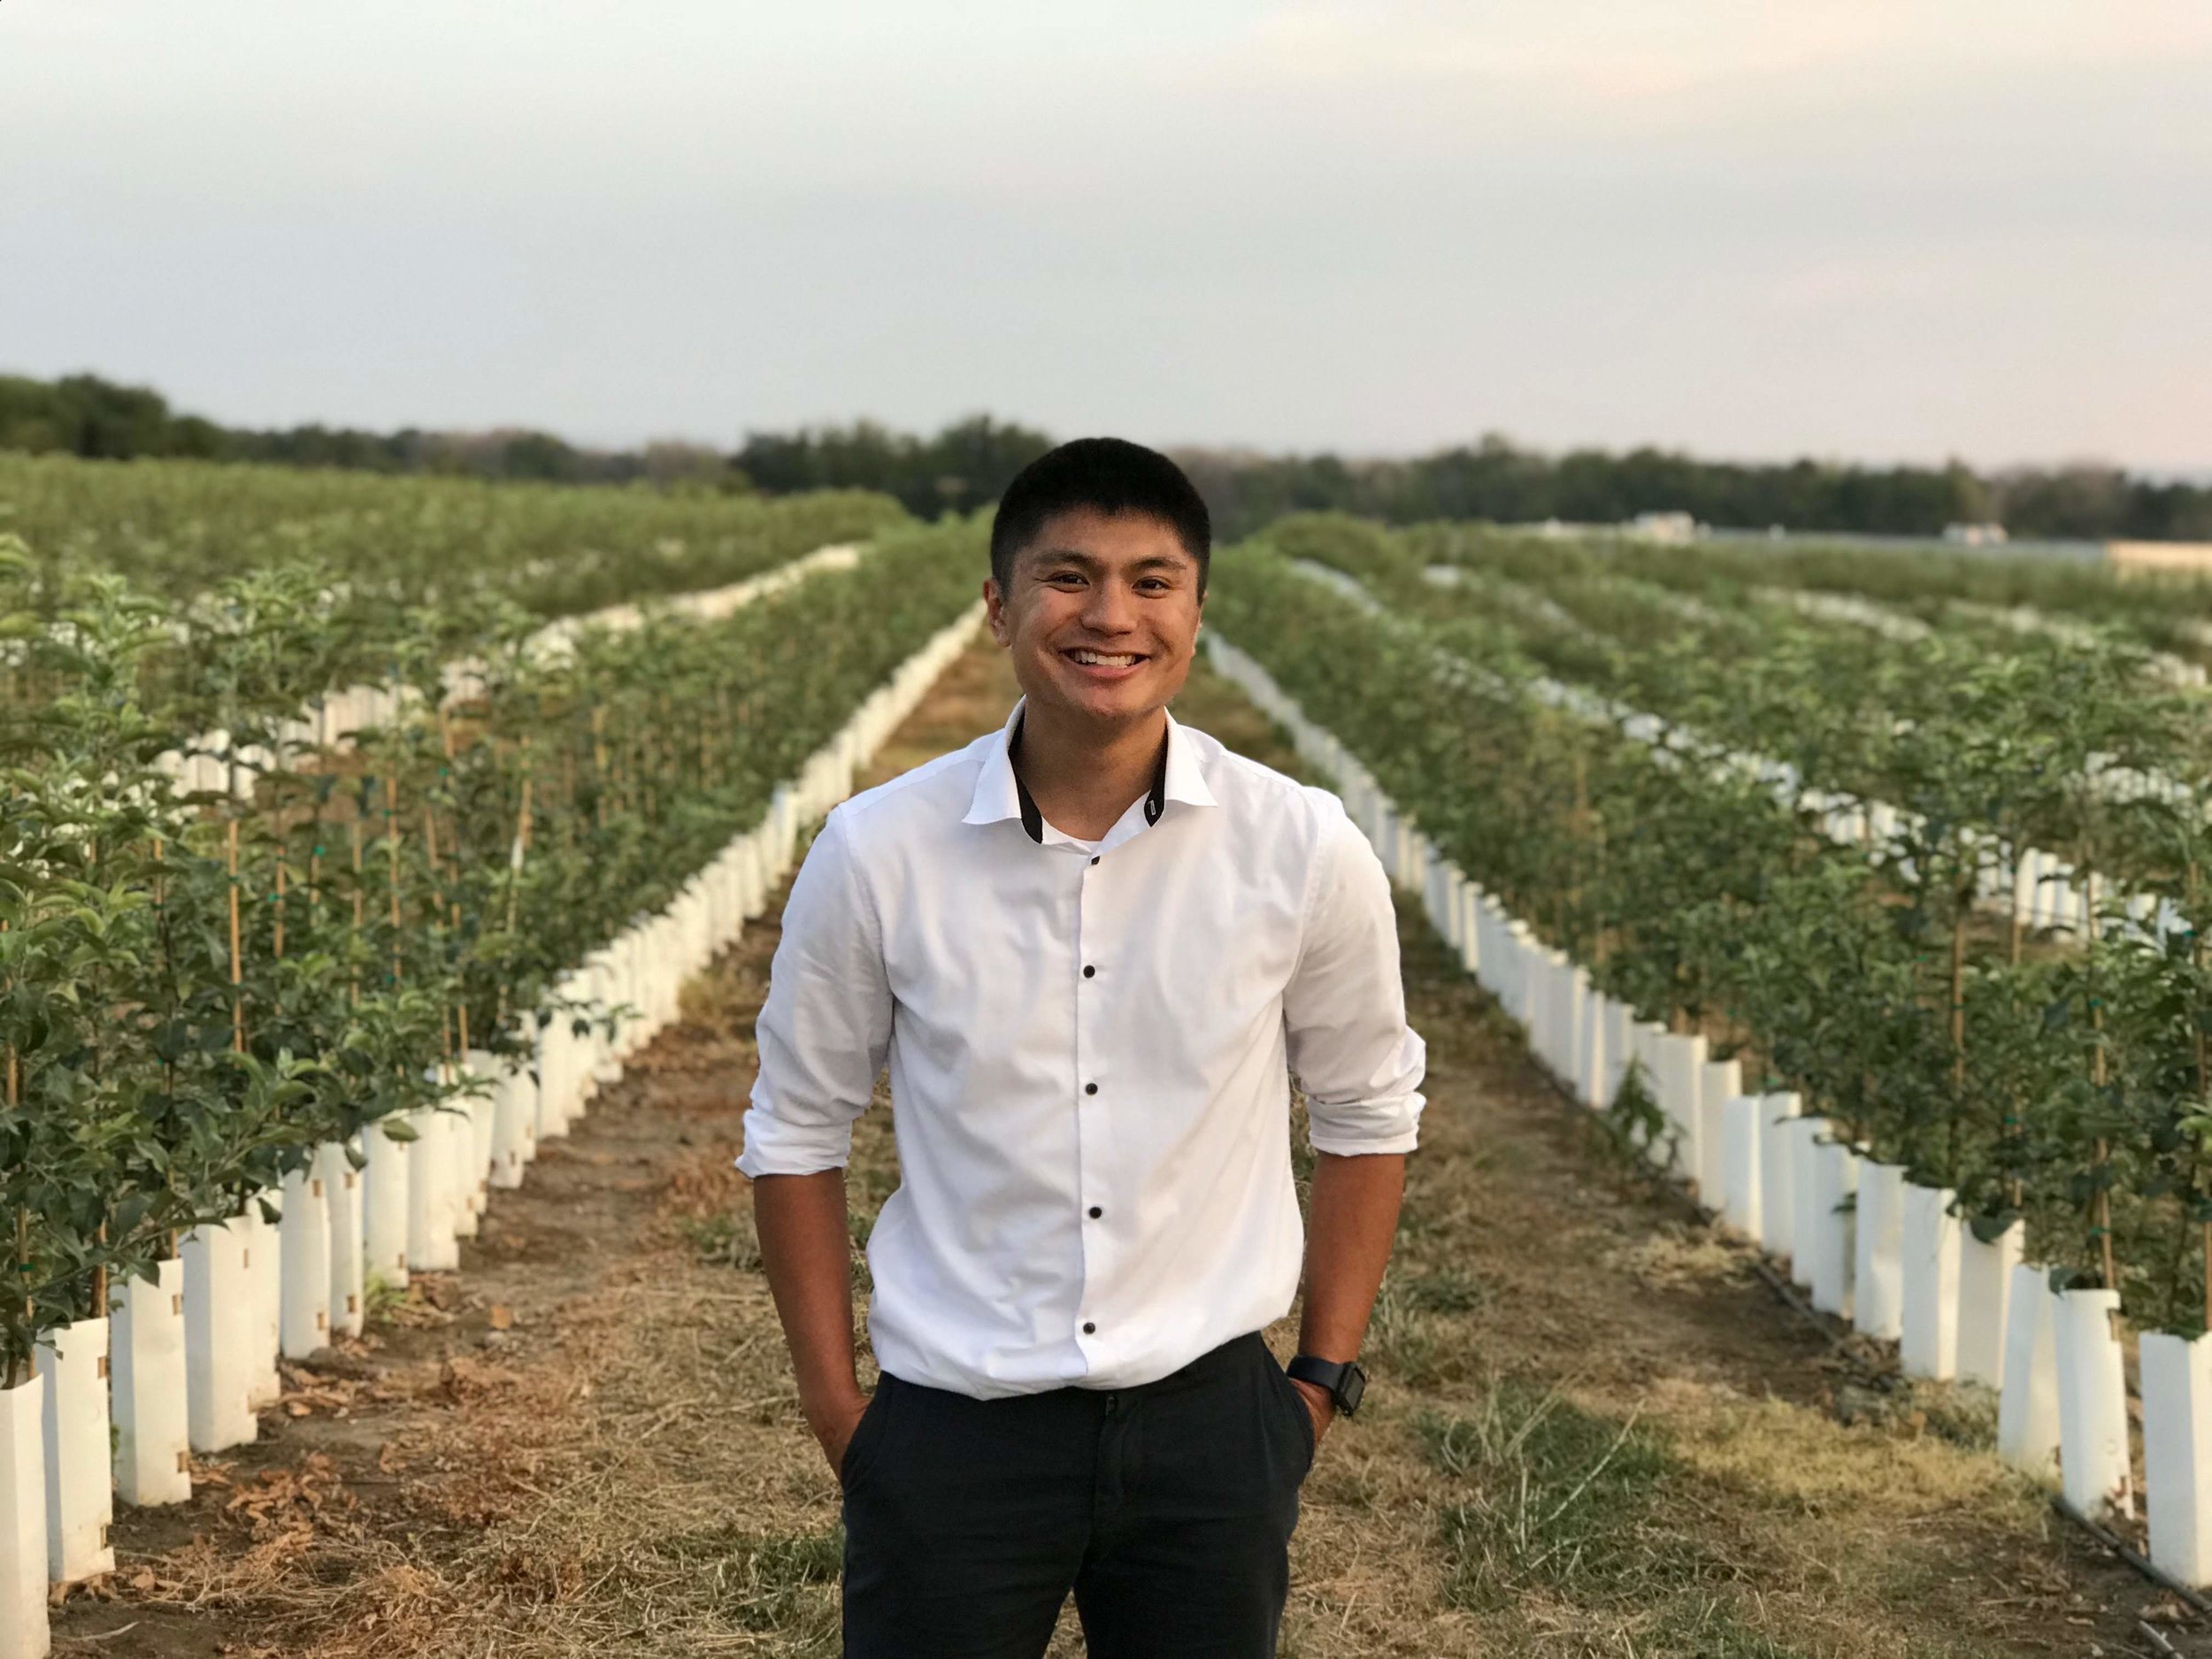 Hey I'm Gavin Basuel - Full Stack User Experience Designer, Conversion Rate Optimisation Specialist, and Funnel Hacker.Aiming to serve E-Commerce businesses through design thinking. Constantly self-educating with a white-belt mentality, boosting conversions through design thinking, and solve problems with empathy & entrepreneur mindset.